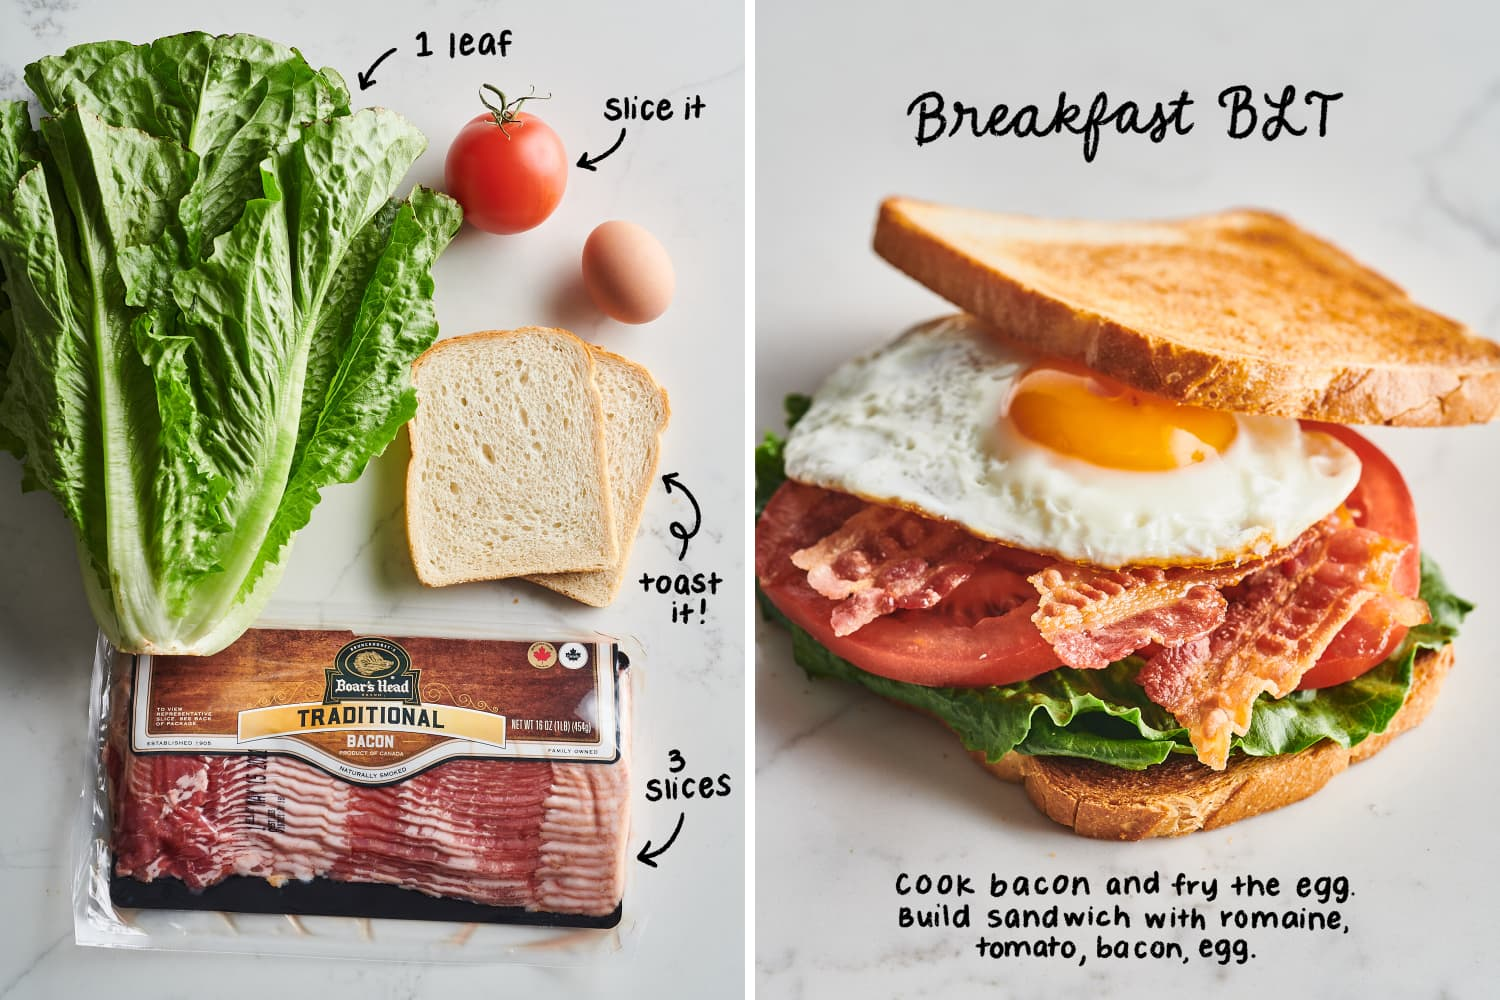 These 5-Ingredient Egg Sandwiches Will Make You So Excited for Breakfast